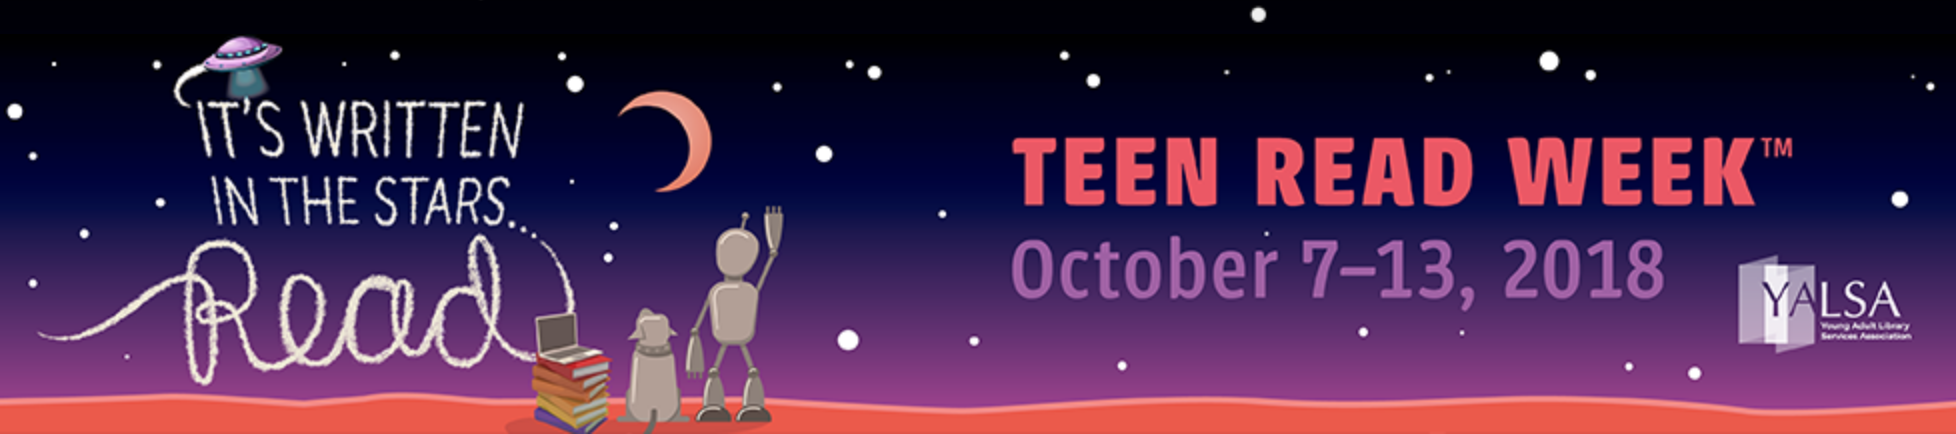 Teen Read Week Banner